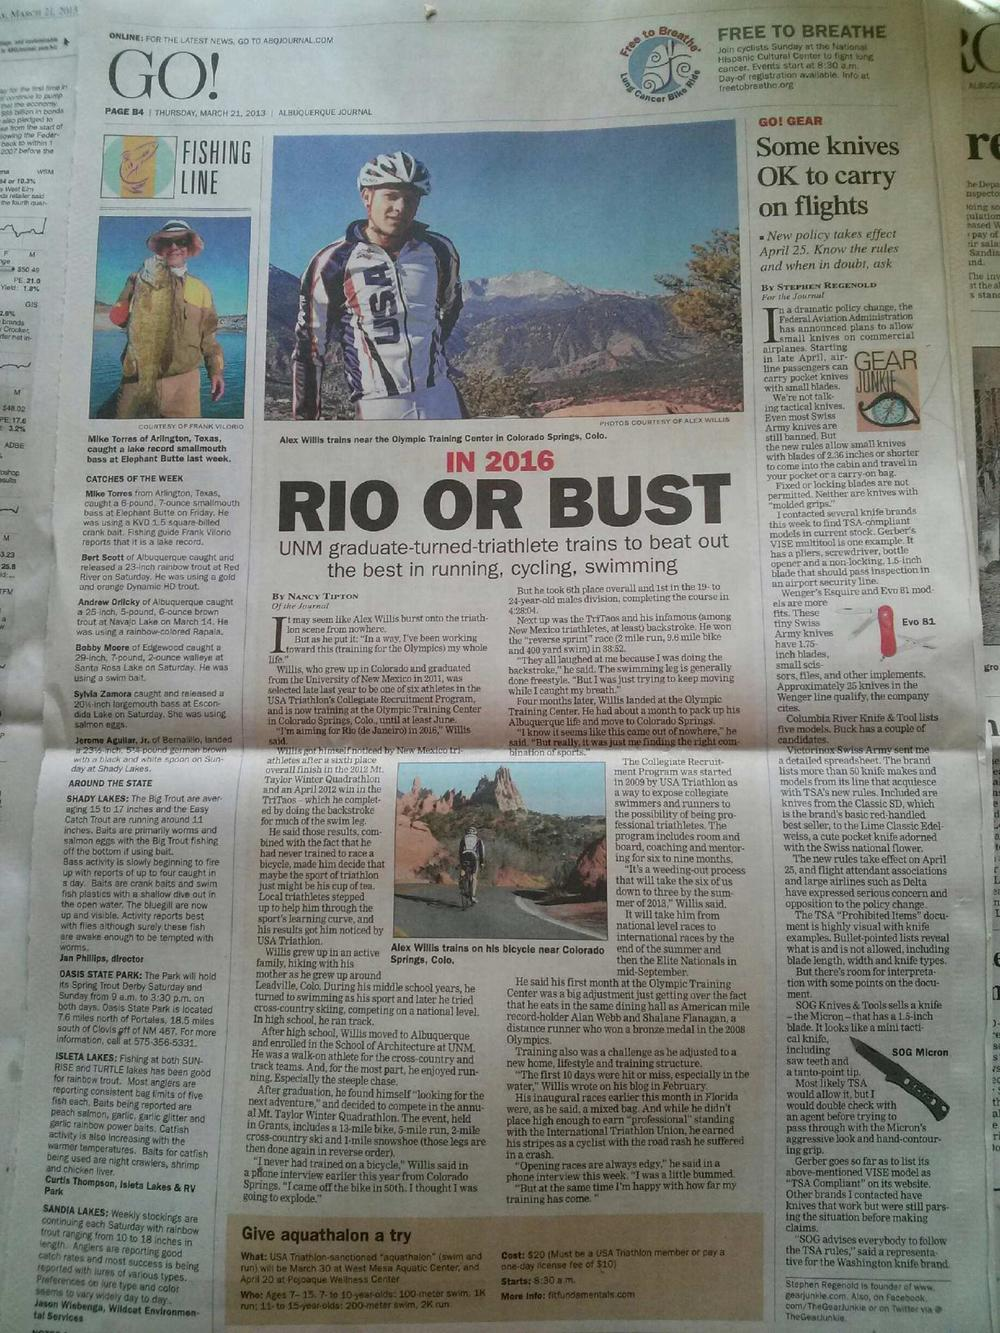 Feature Article in The Albuquerque Journal on 3/21/13